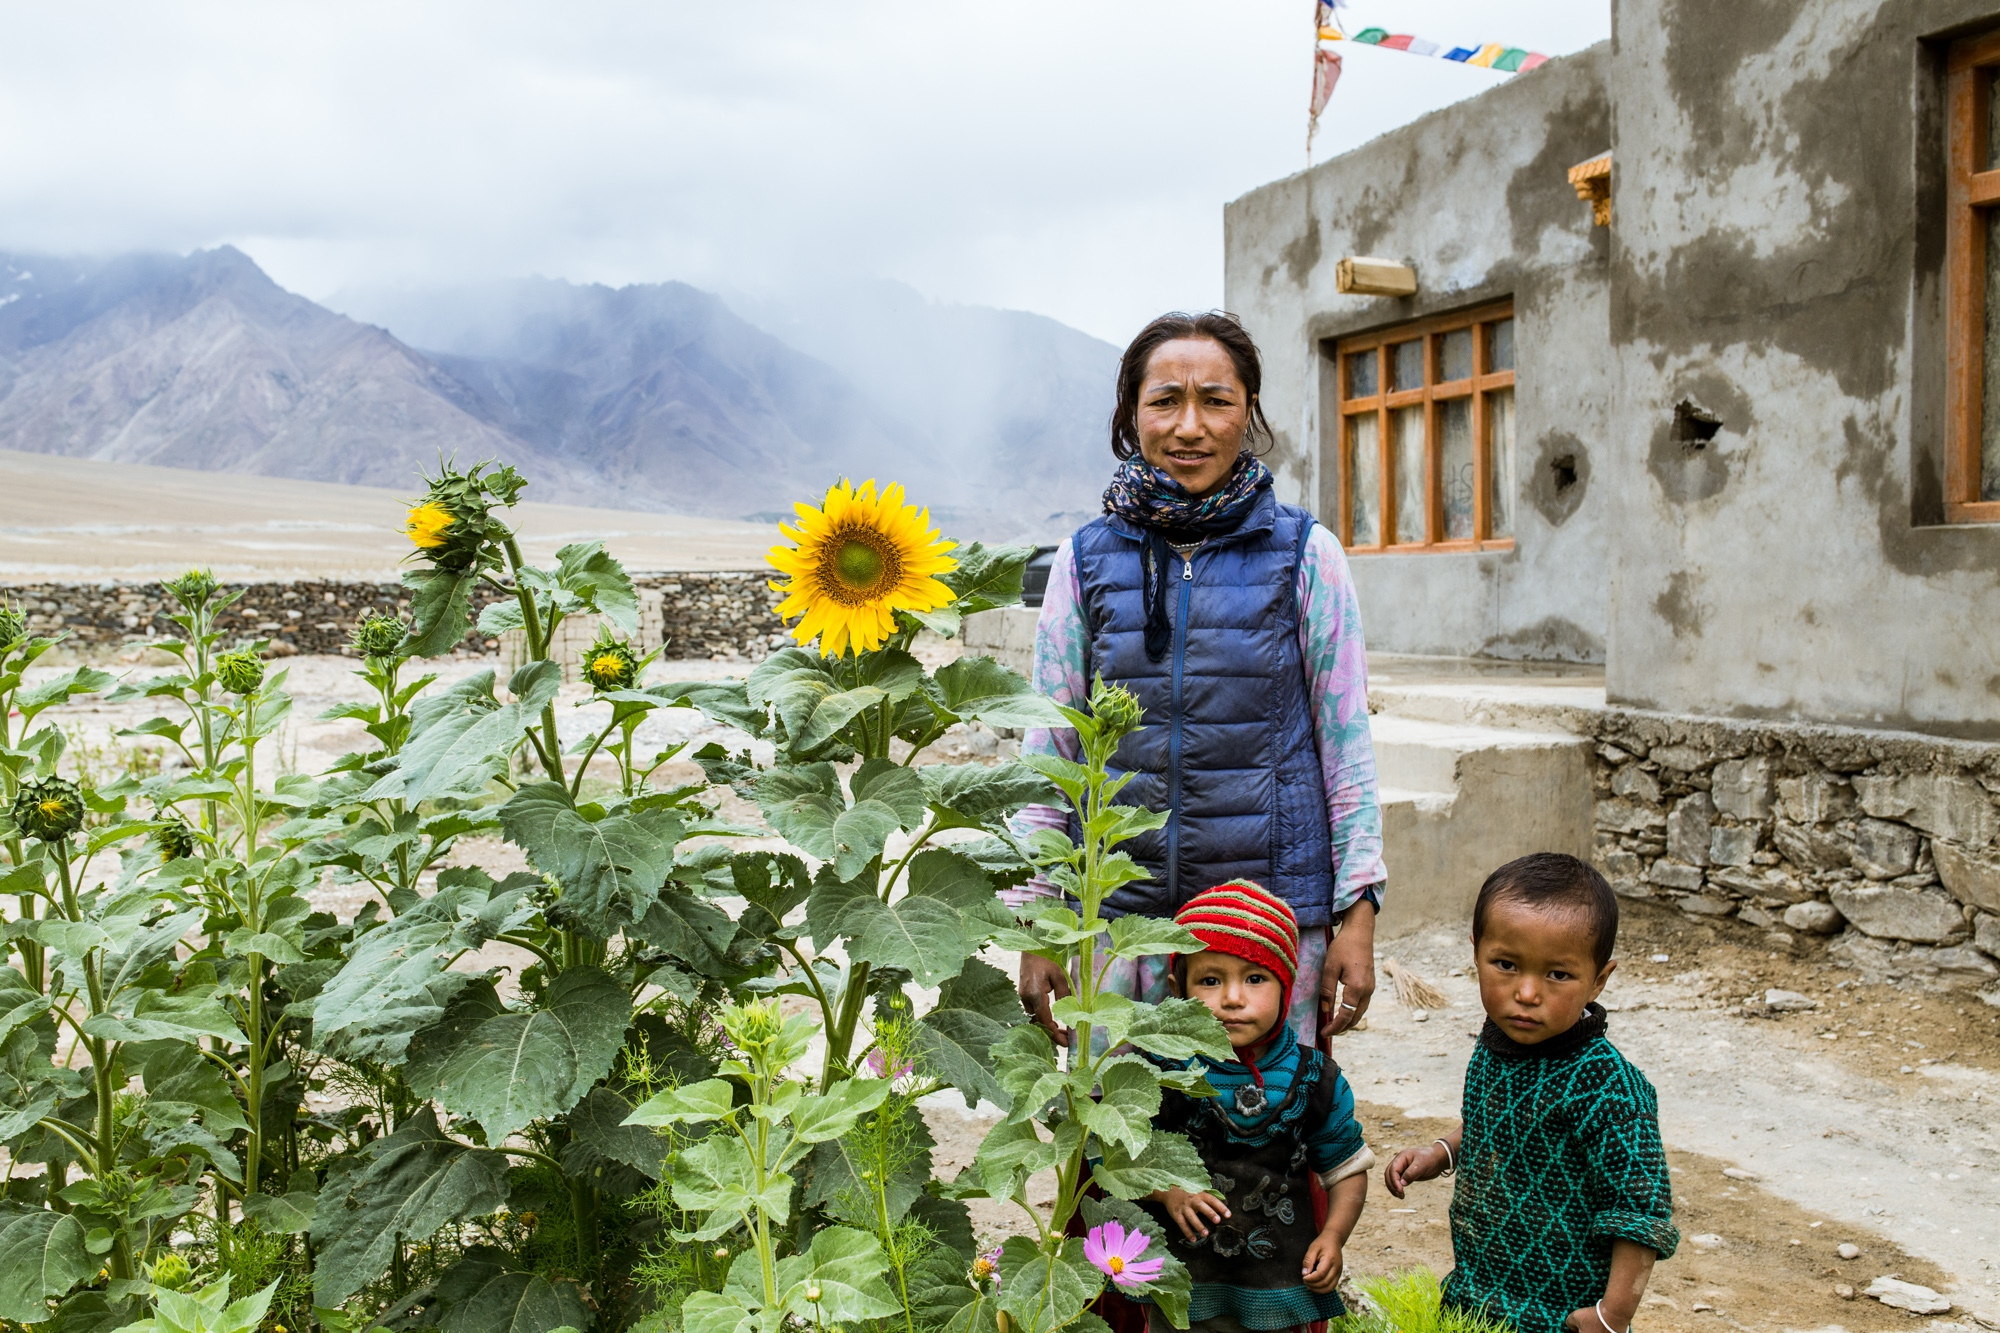 Tazen Chezen and her children stand in front of their new home in the Zanskar Valley, India. Tazen's family moved in search of water, as their previous home in Kumik faces constant drought due to the old glacier disappearing from warming temperatures.